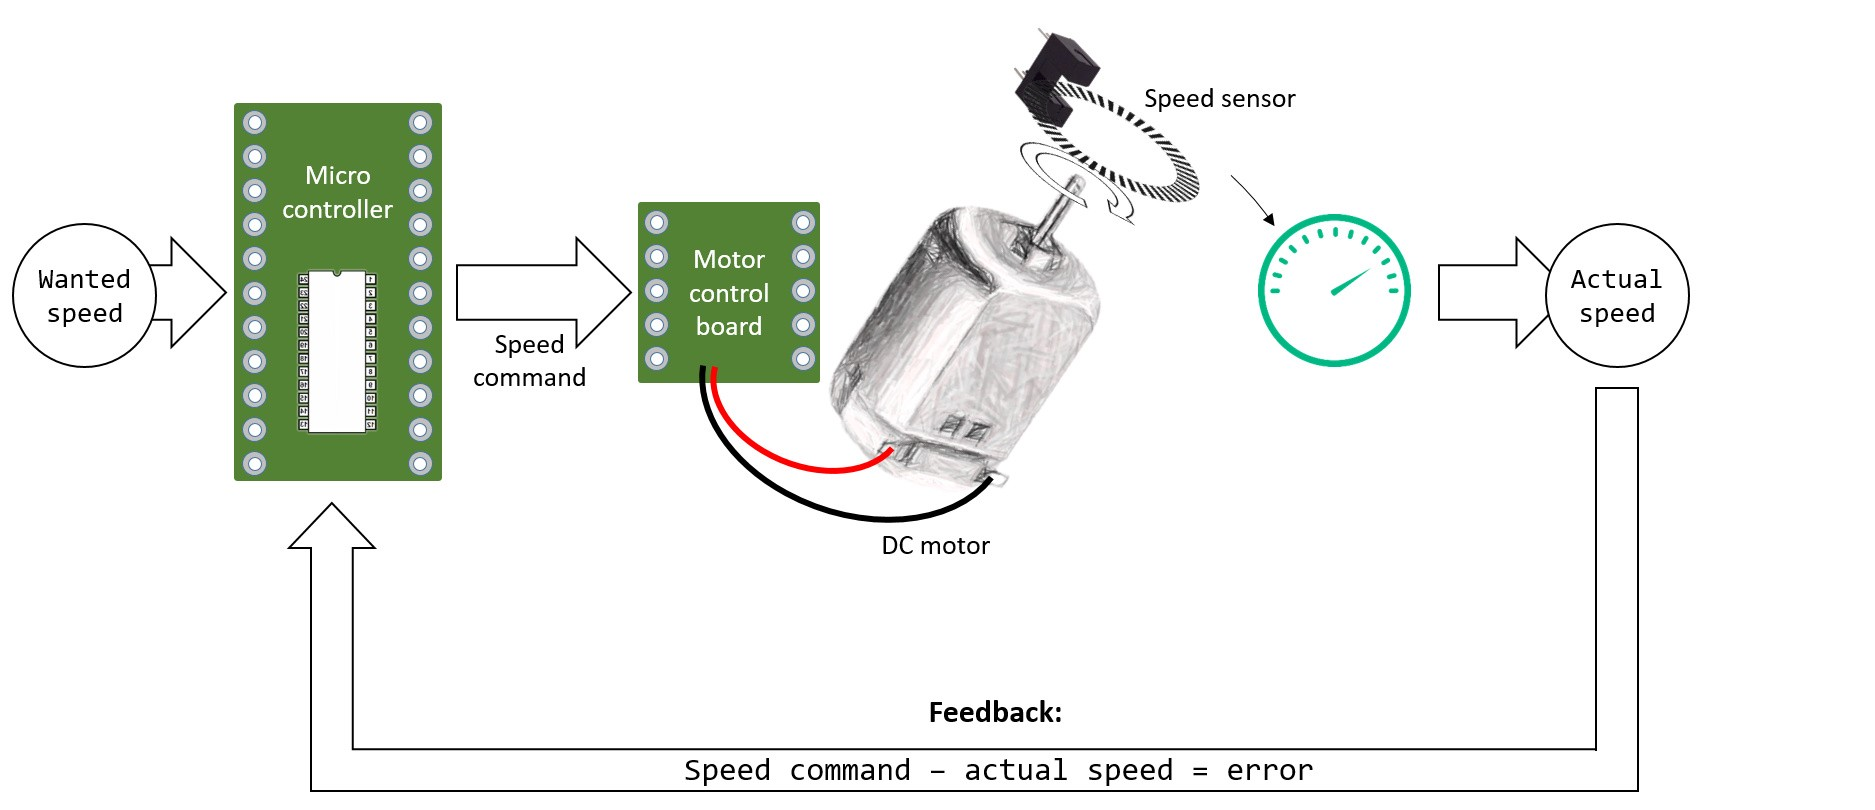 An introduction to PID control with DC motor - luosrobotics